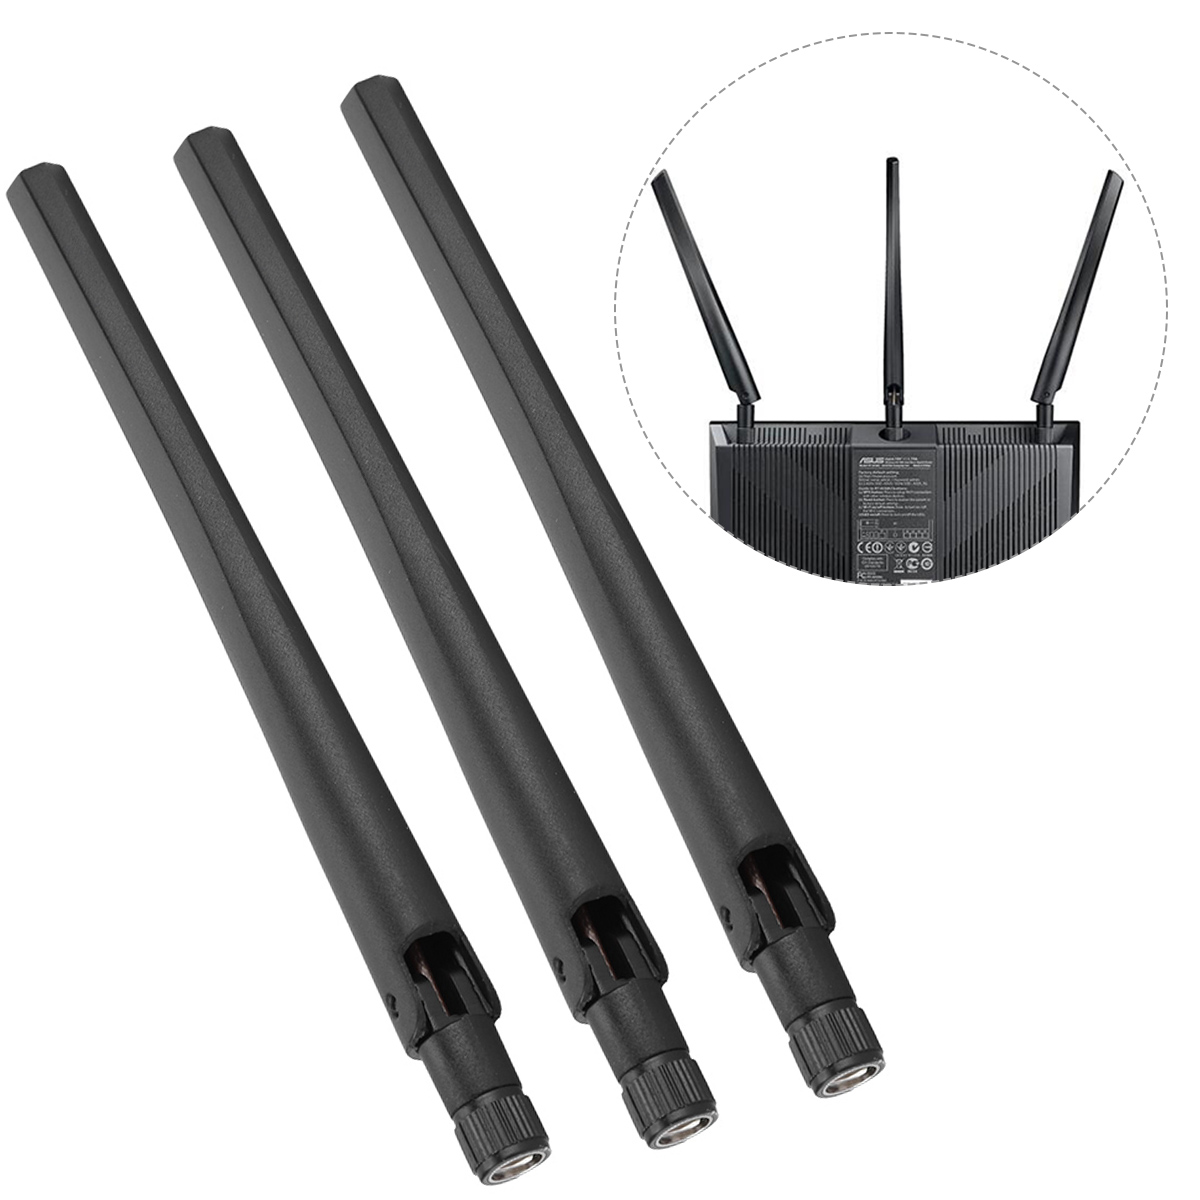 New Antenna 3Pcs WiFi Router Dual Band Wireless Network Card External Antenna SMA Interface For ASUS RT-AC68u​​